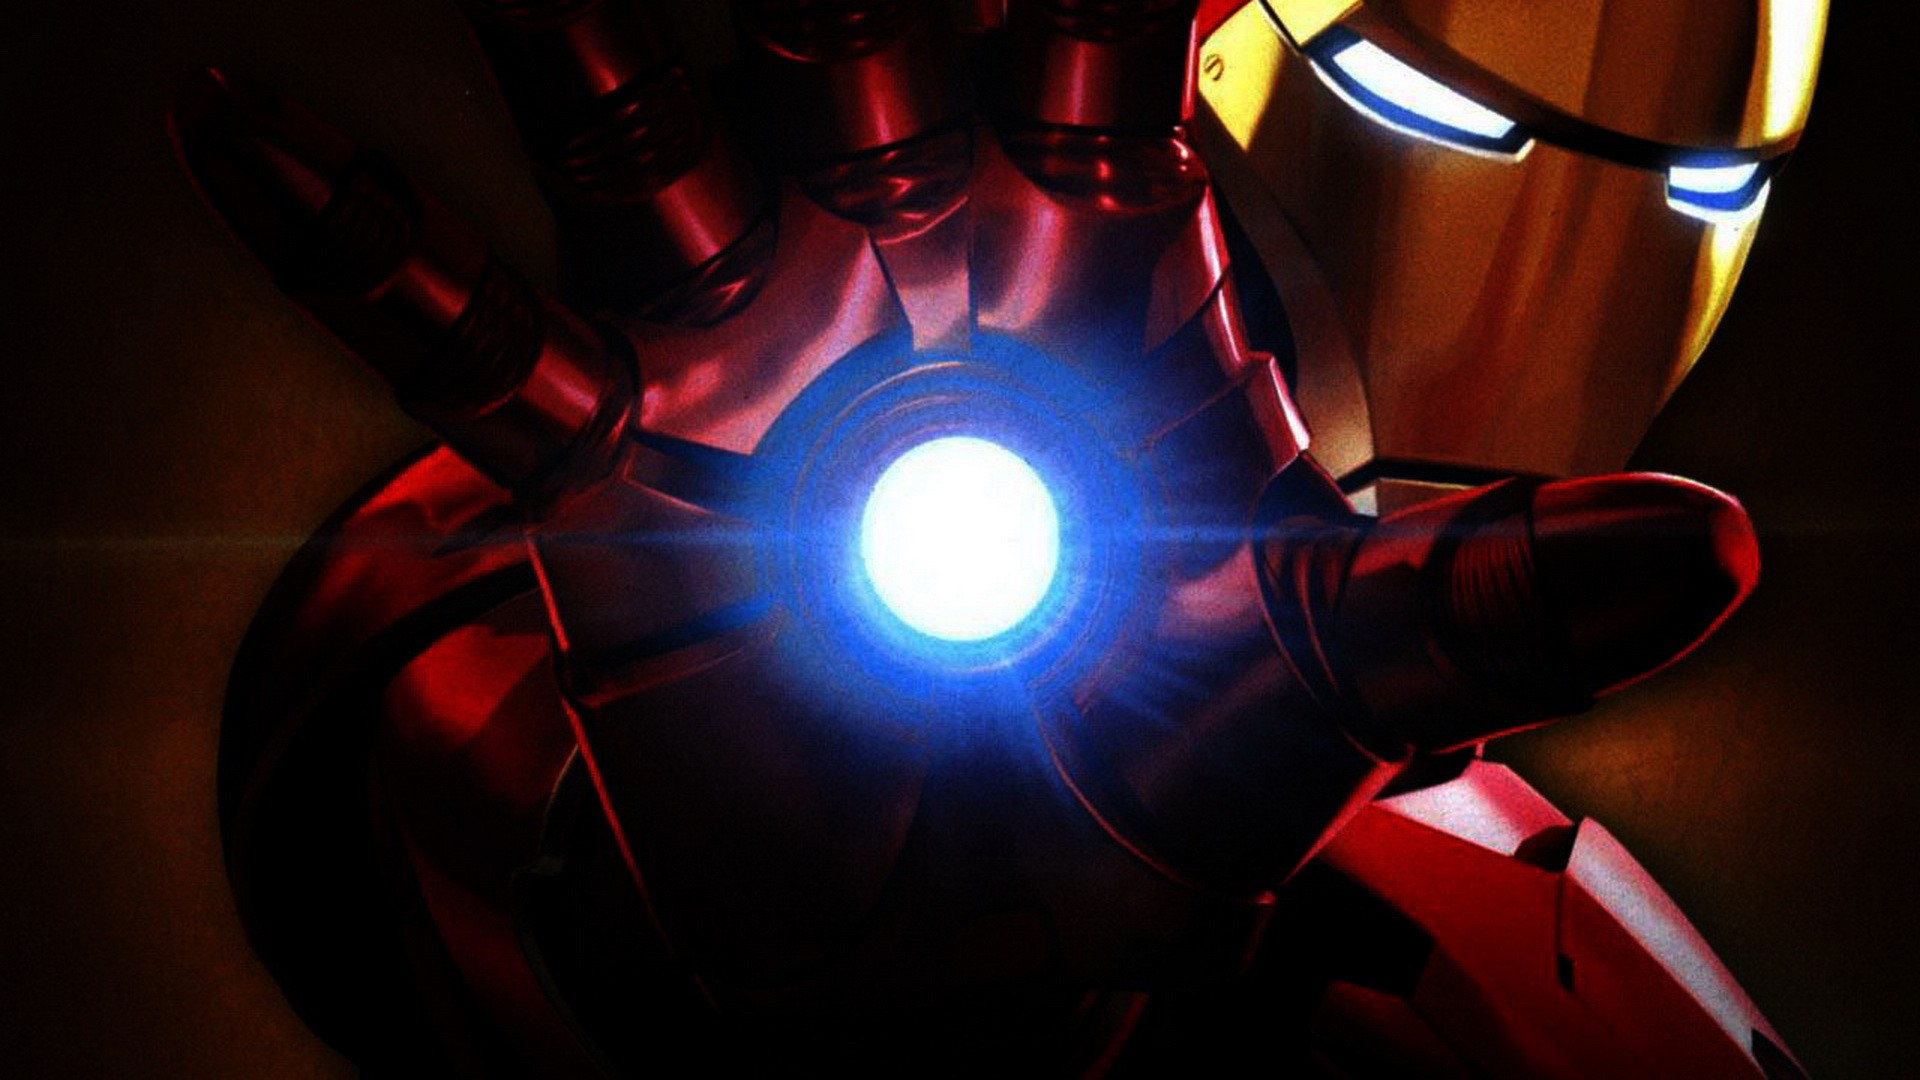 35 Iron Man HD Wallpapers for Desktop   Cartoon District 1920x1080